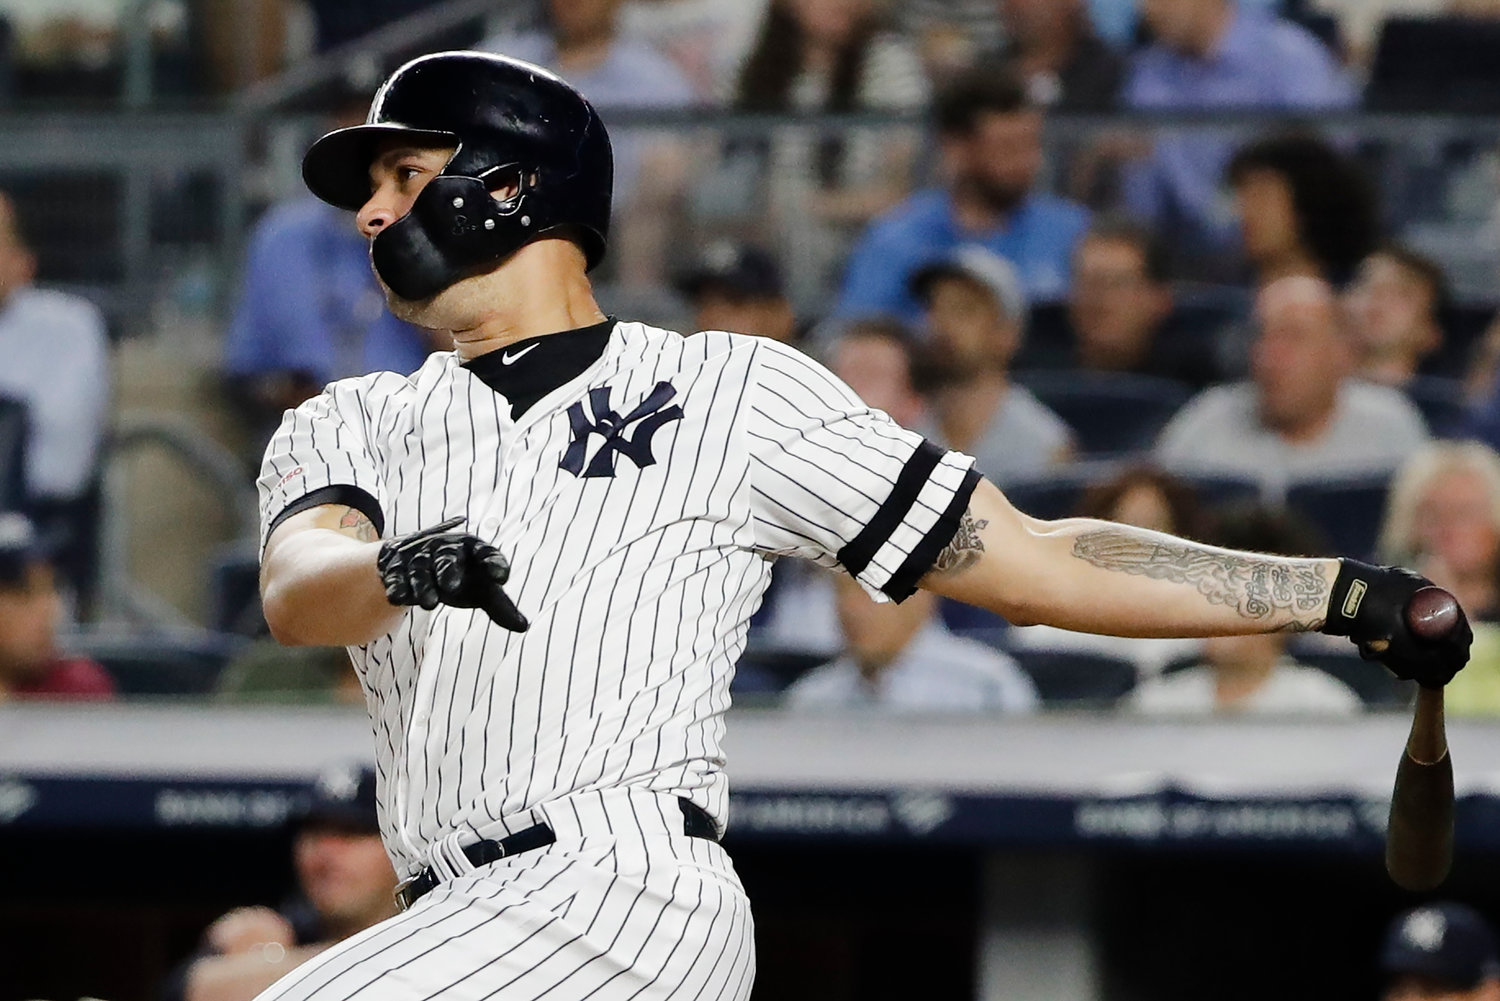 CONNECTS — Yankees batter Gary Sanchez follows through on an RBI double during the fourth inning of Tuesday's game against the Orioles in New York. The Yankees defeated Baltimore for the 15th time in a row, 8-3.